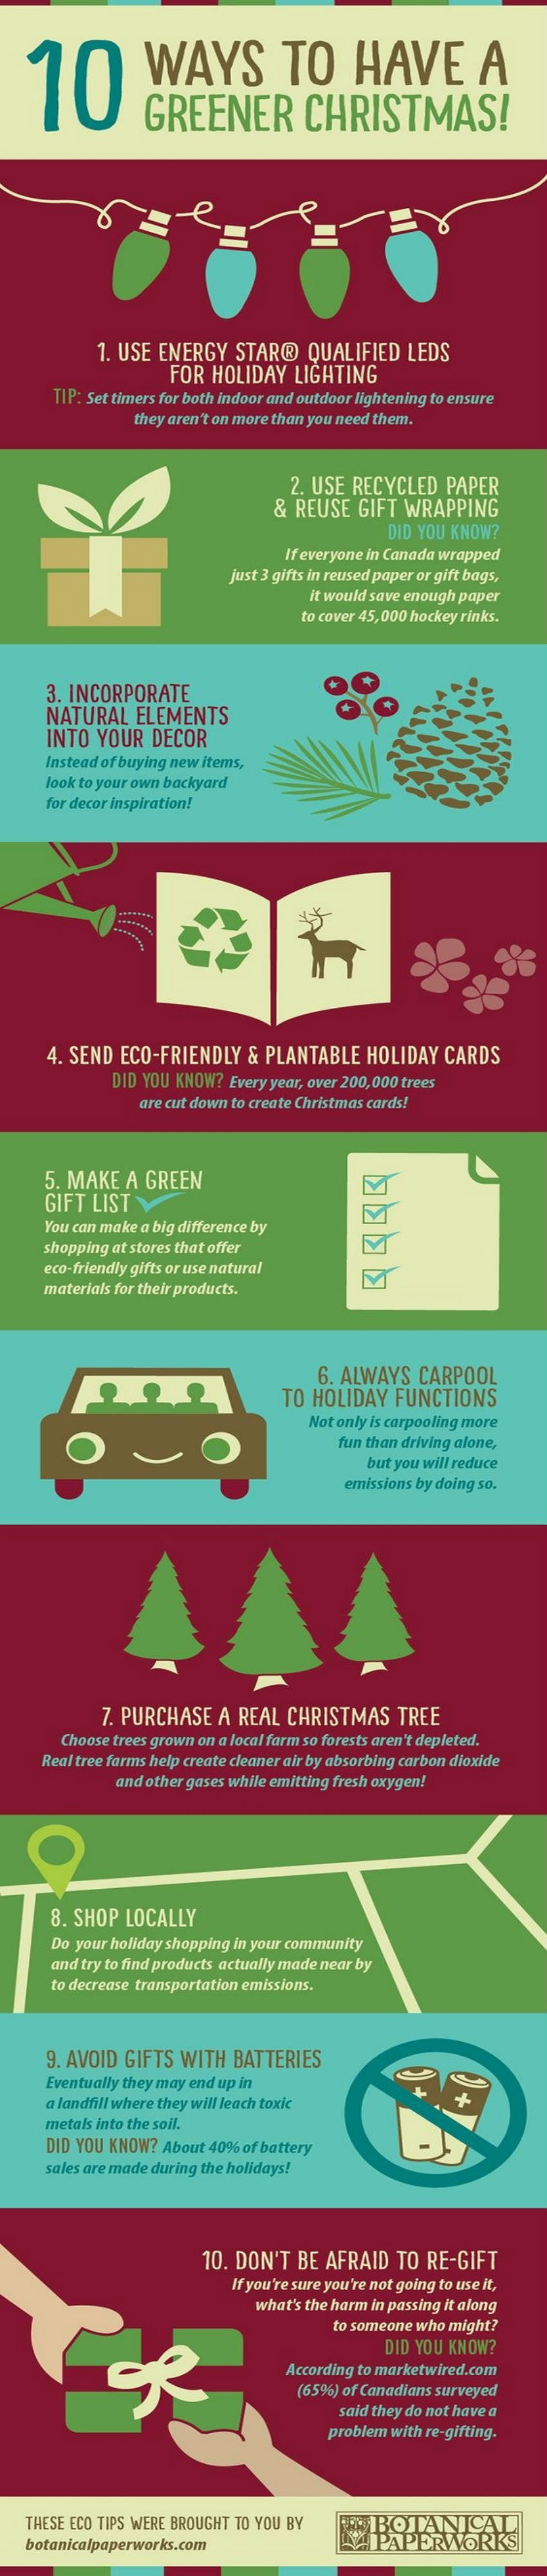 It's possible to have a green christmas. Follow the infopgraphic. Image Source: Buzzfeed